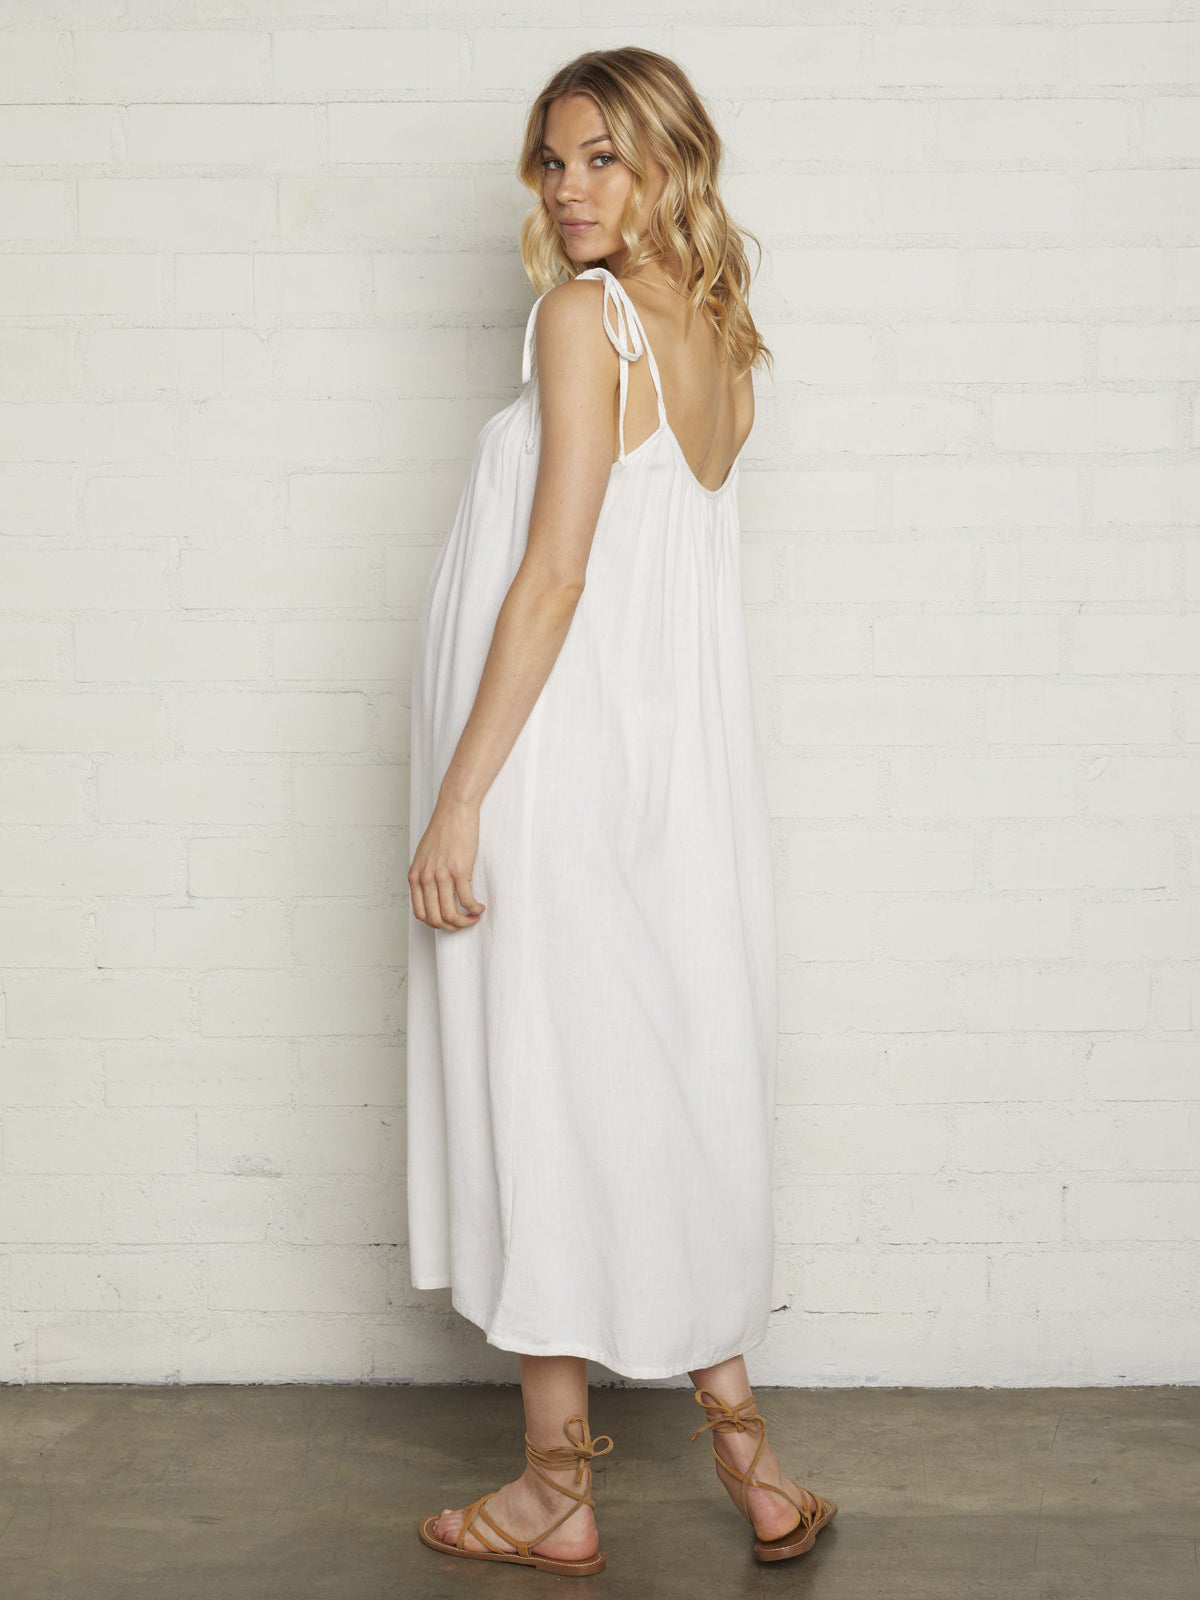 Rachel Pally Maternity Linen Caity Dress - Chalk White | TILDEN